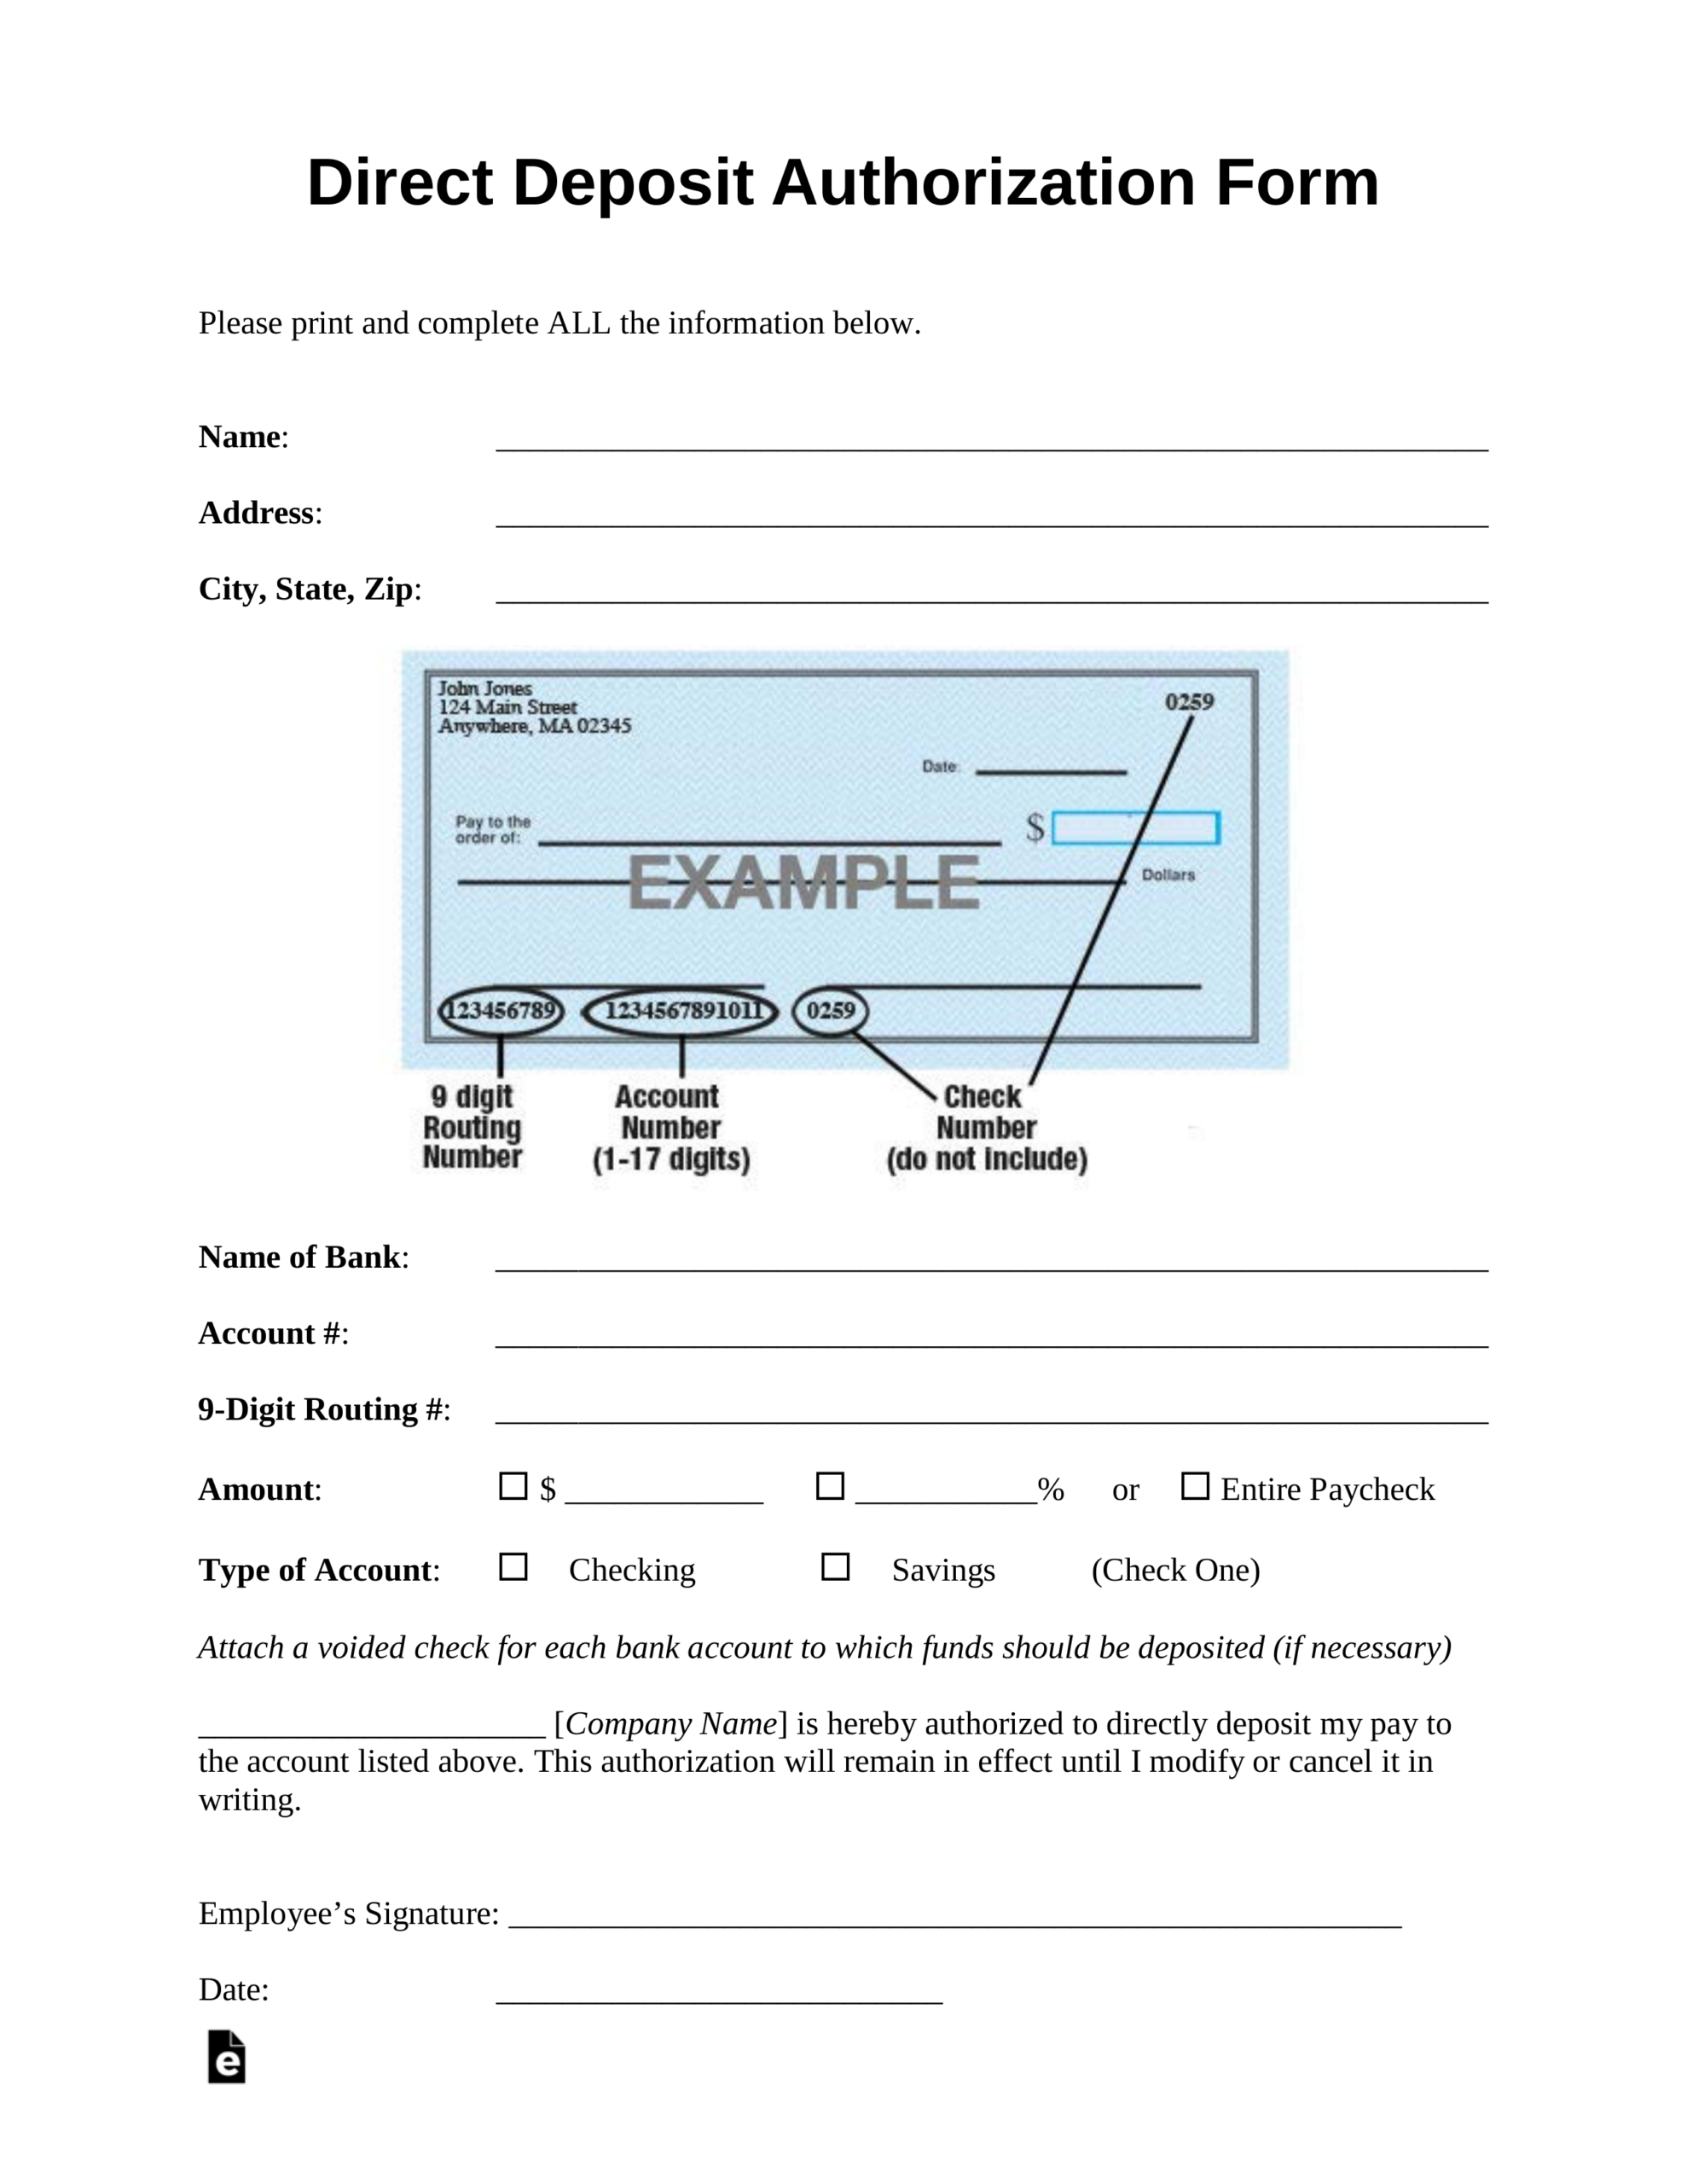 Free Direct Deposit Authorization Forms - Pdf | Word – Eforms